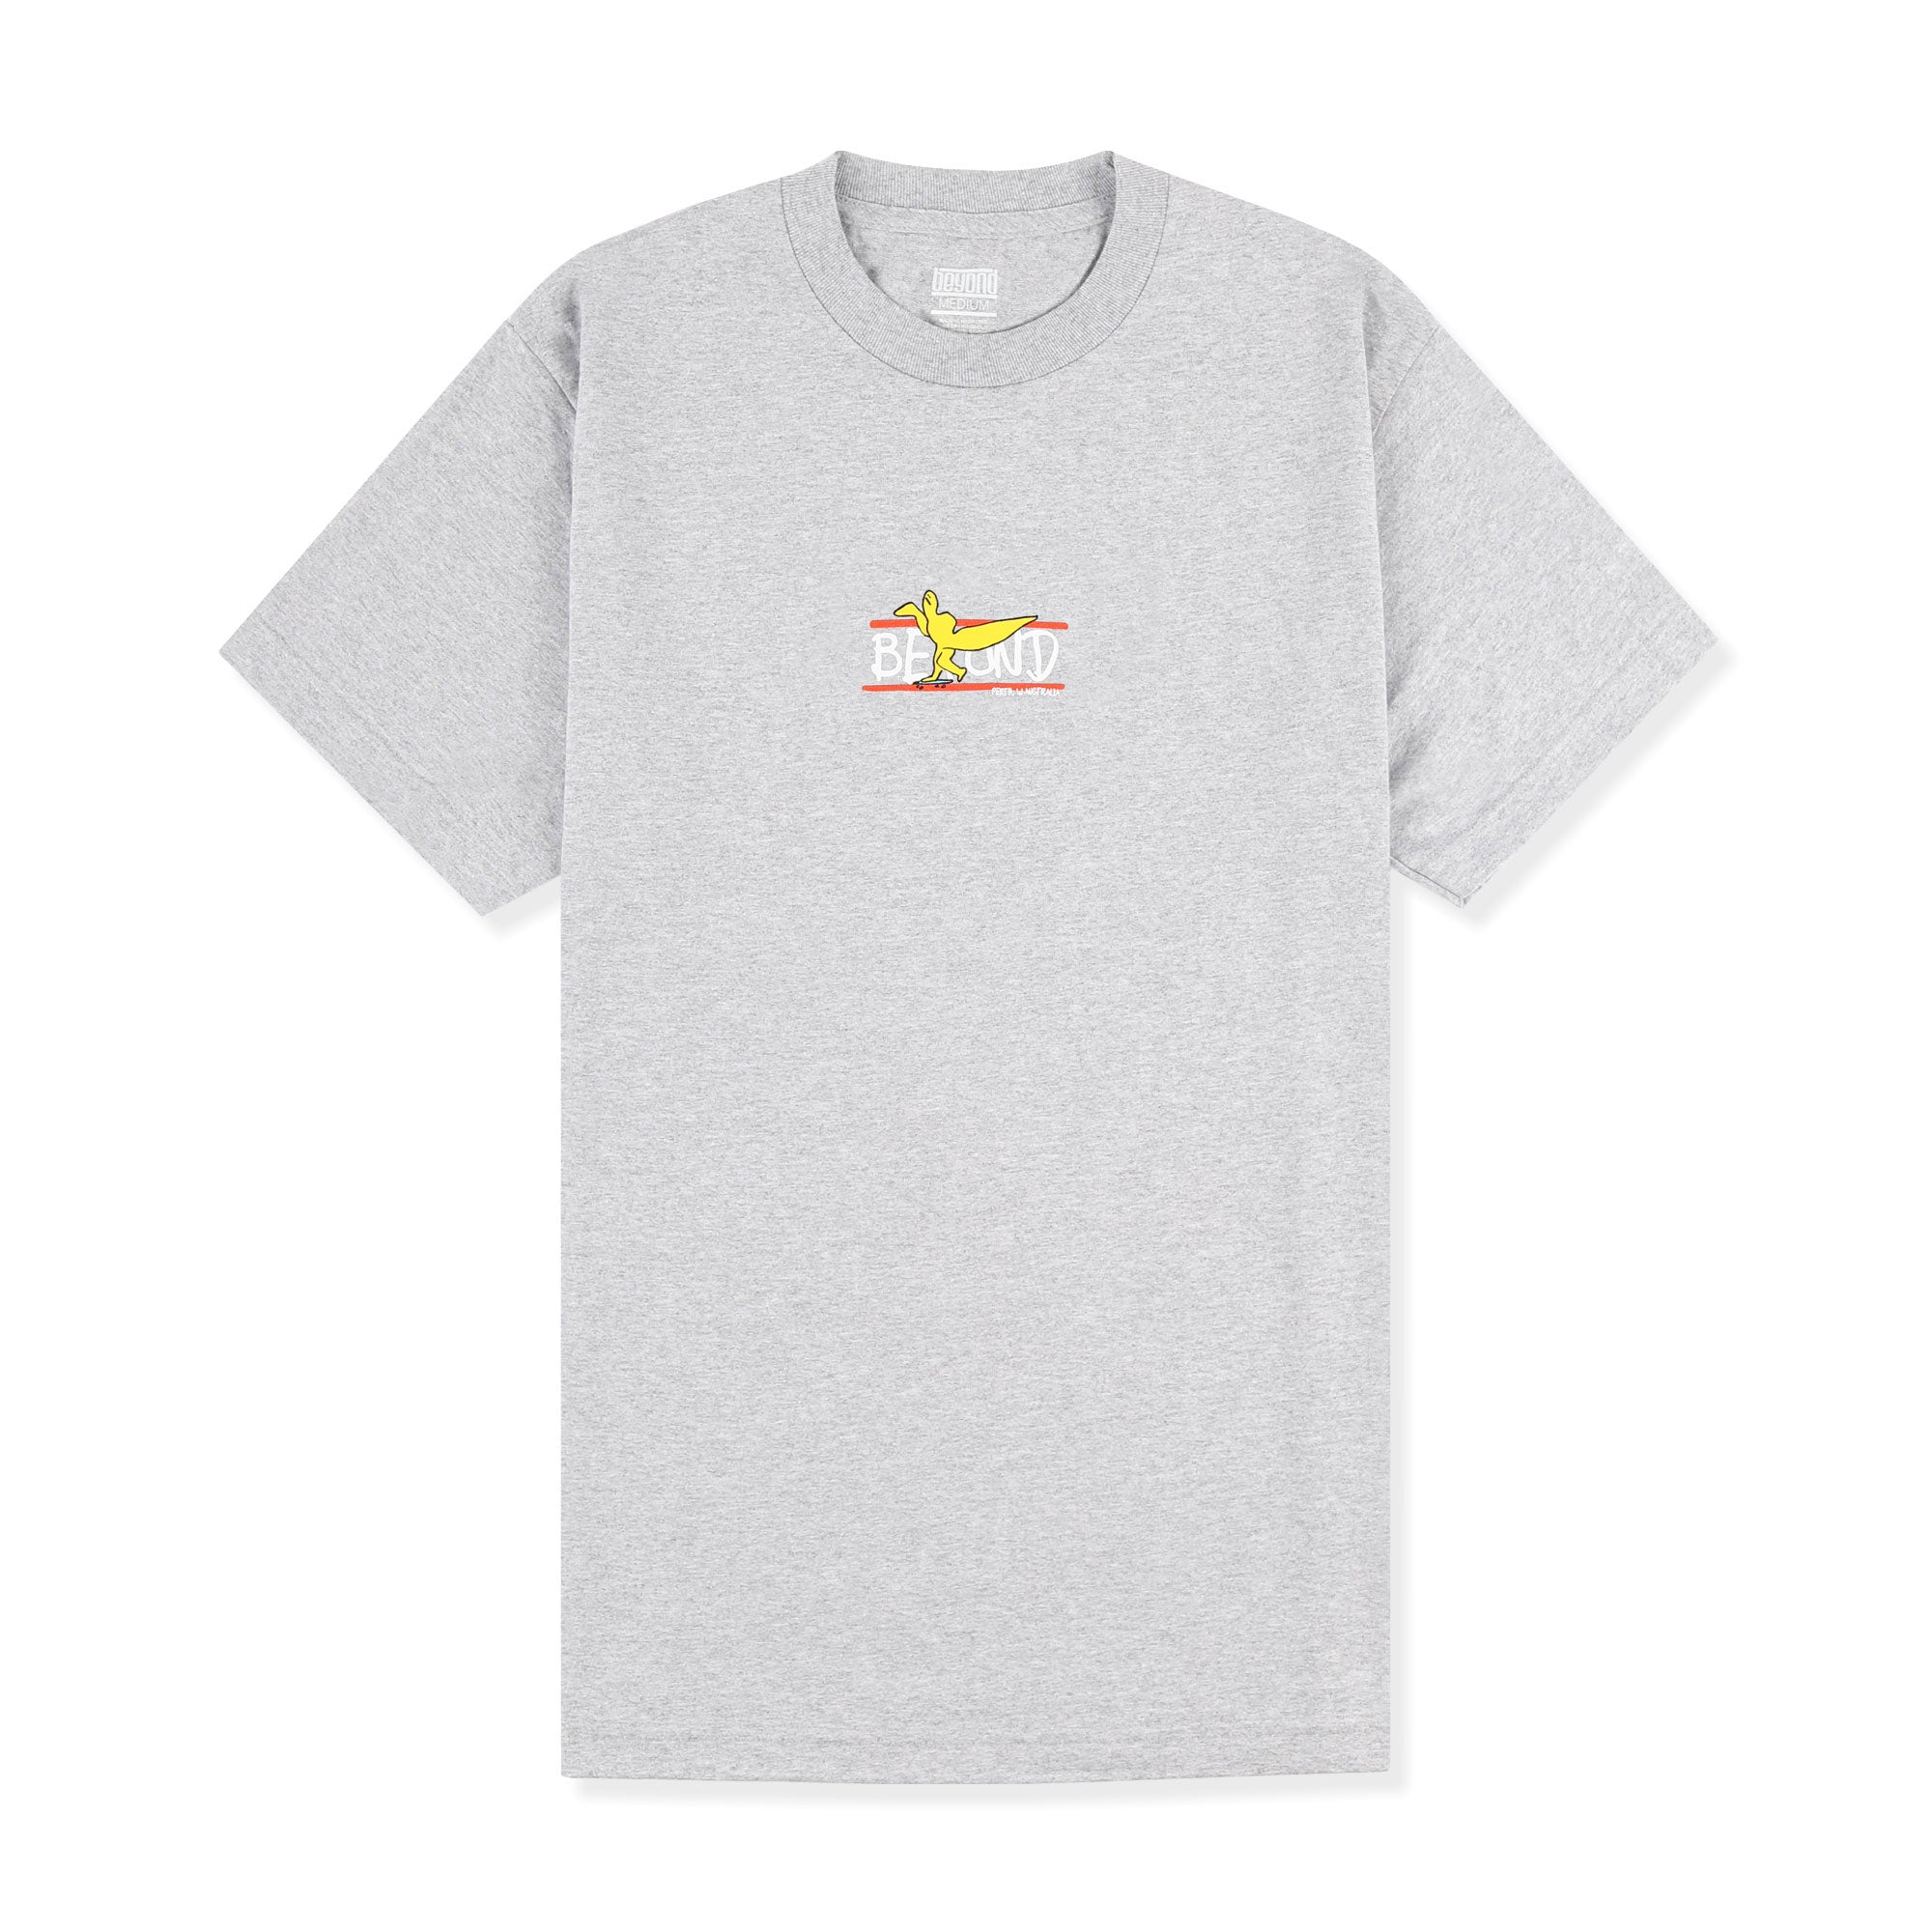 Beyond Gonz Tee Product Photo #1